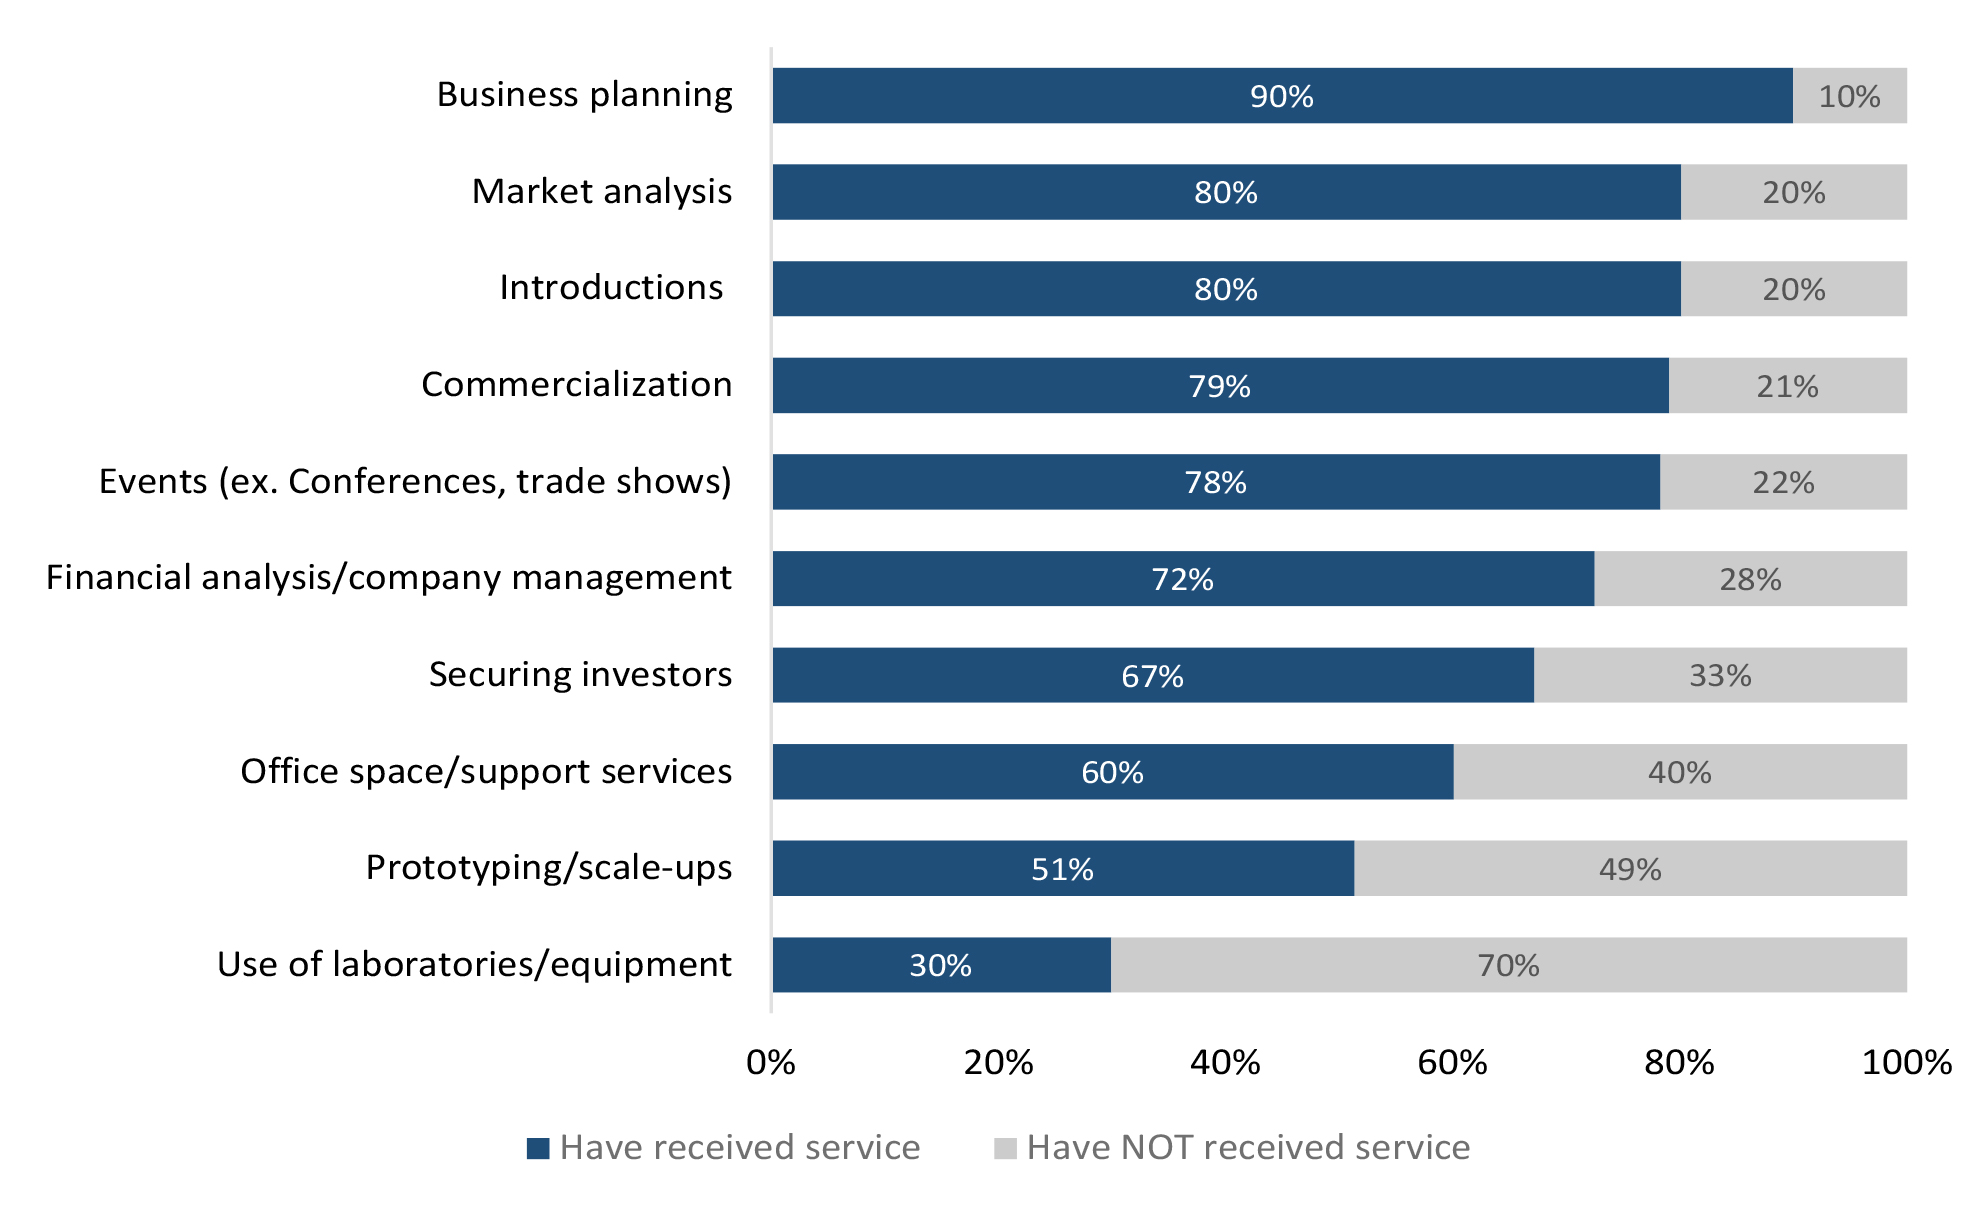 Survey respondents received a wide range of services from CAIP-funded A/Is